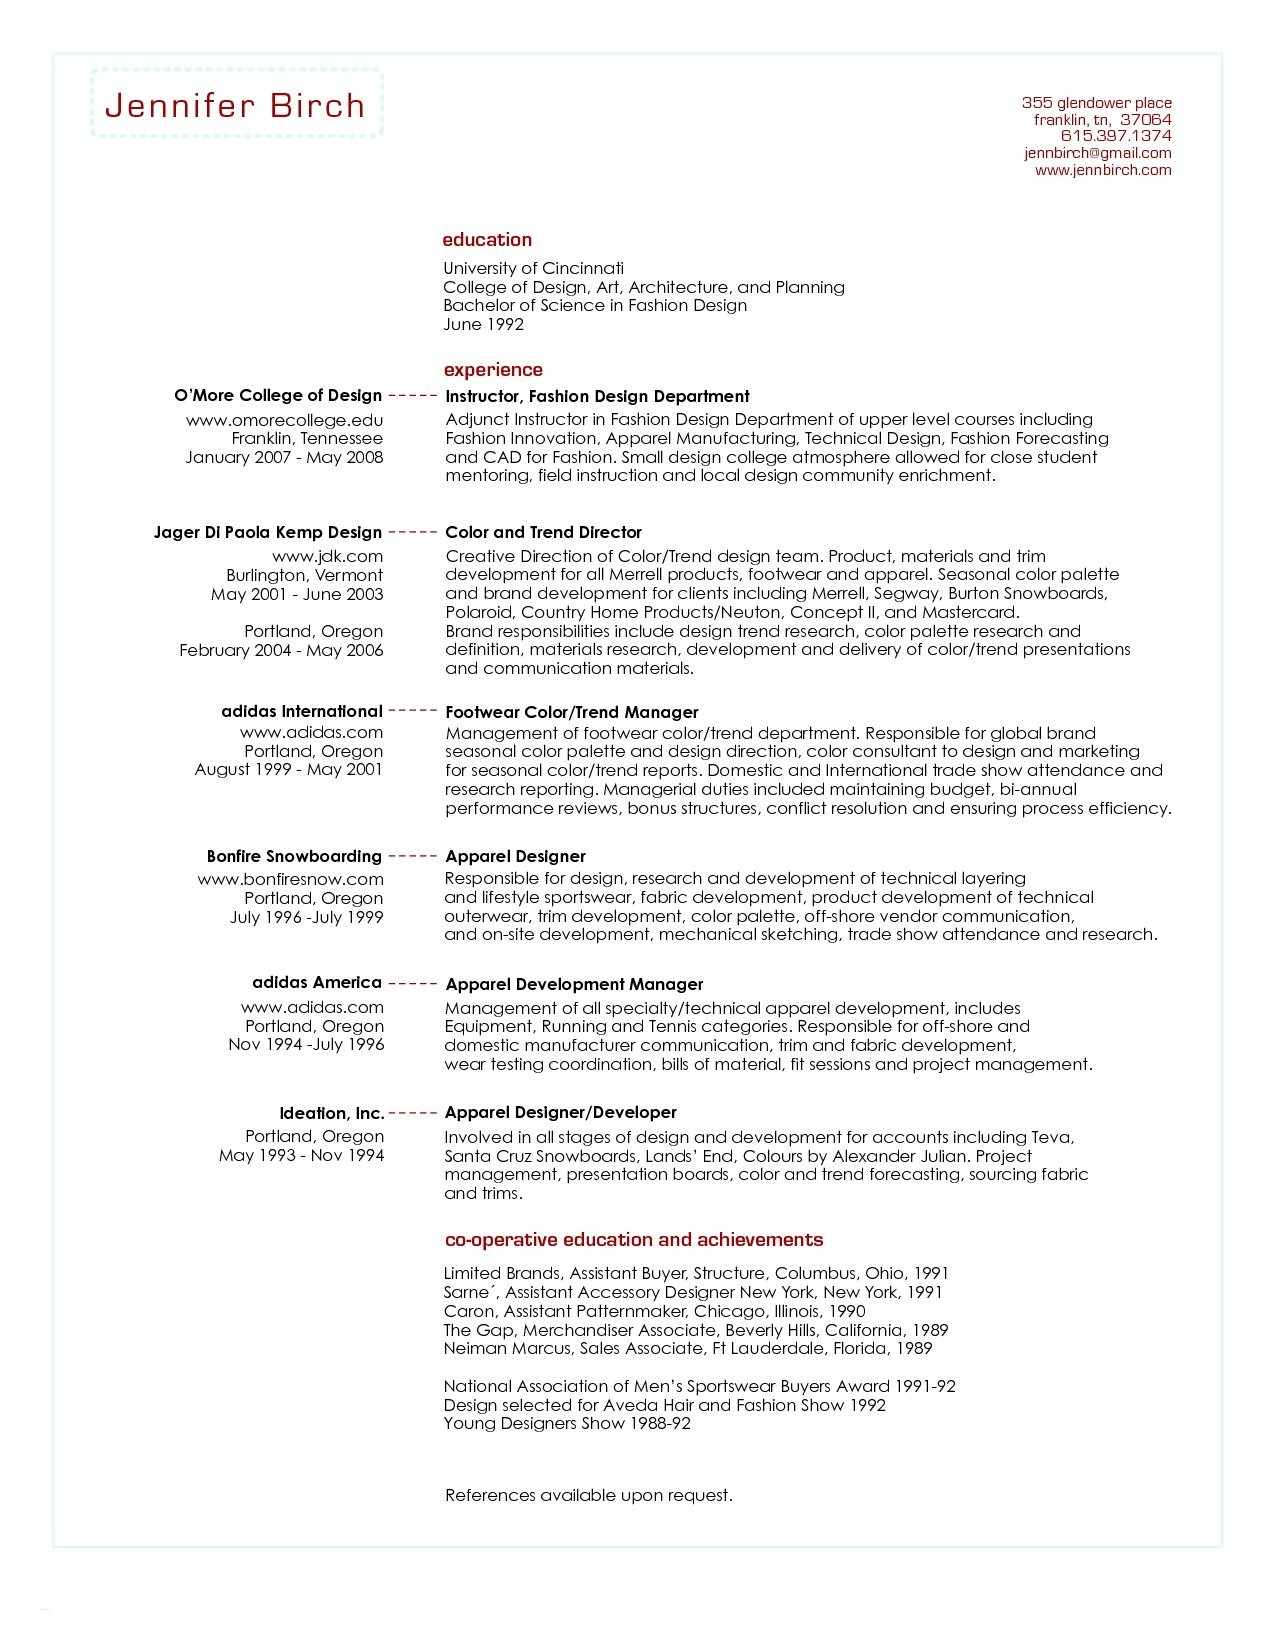 Project Management Resume - Sample Sales Management Resume New Retail Store Manager Resume Best